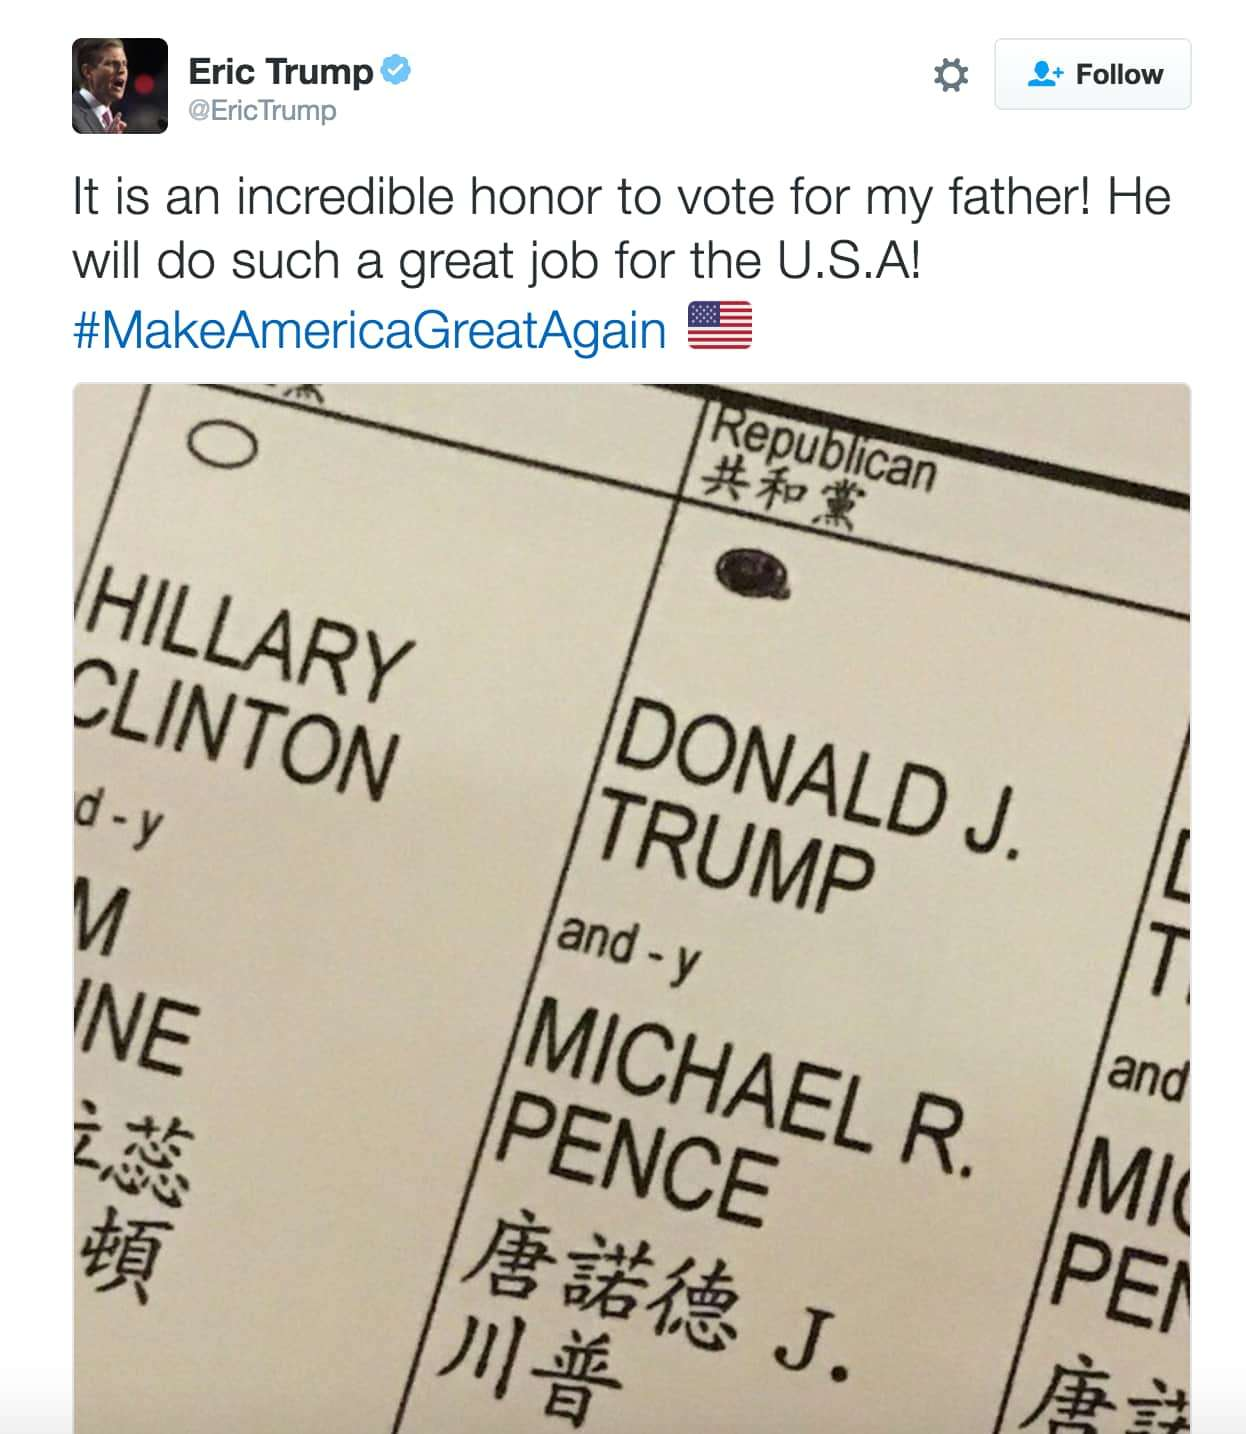 Screenshot of Eric Trump's tweet (copied from Fortune article, though the copyright, such as it is, is Trump's).